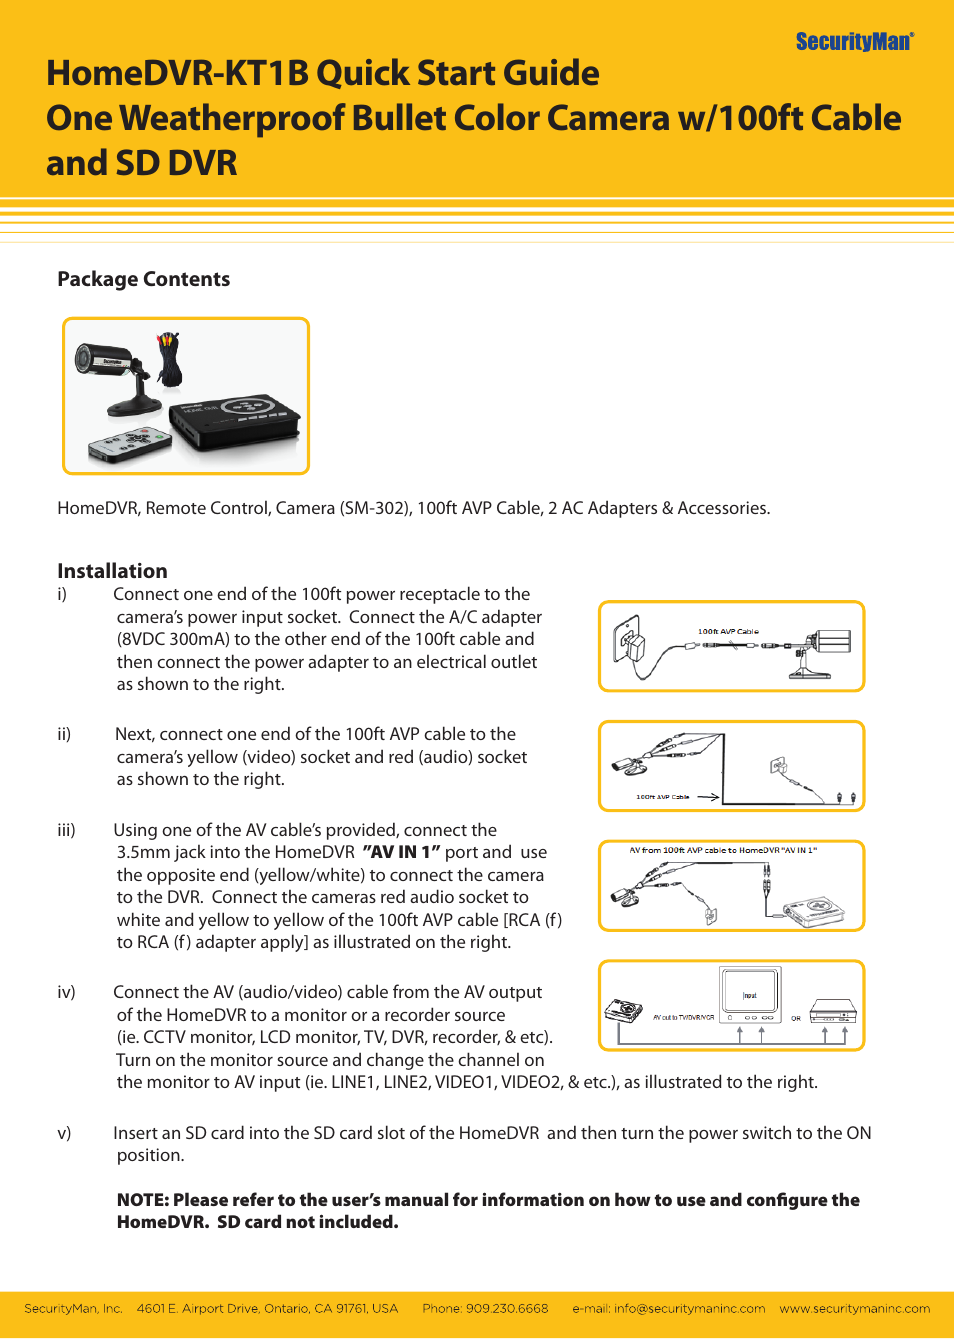 SecurityMan HomeDVR-KT1B User Manual | 1 page